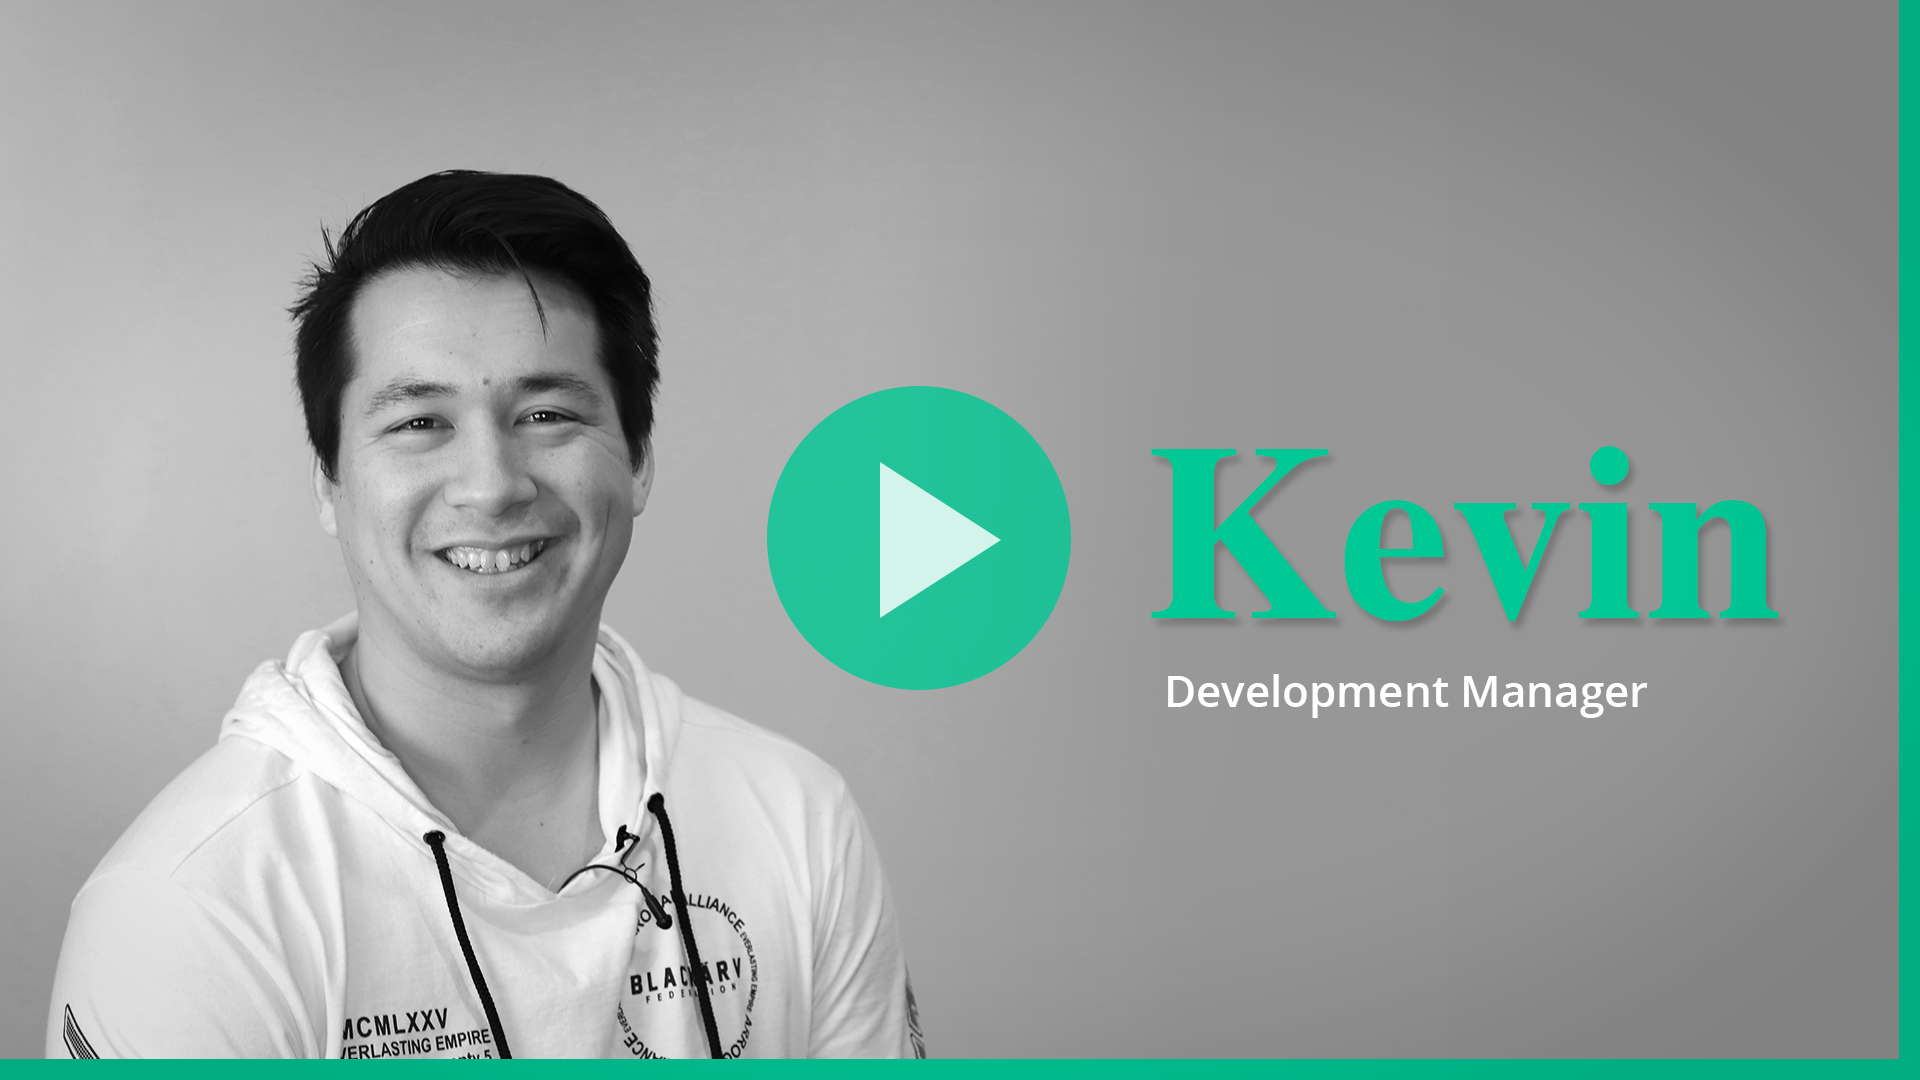 Kevin video for Career page